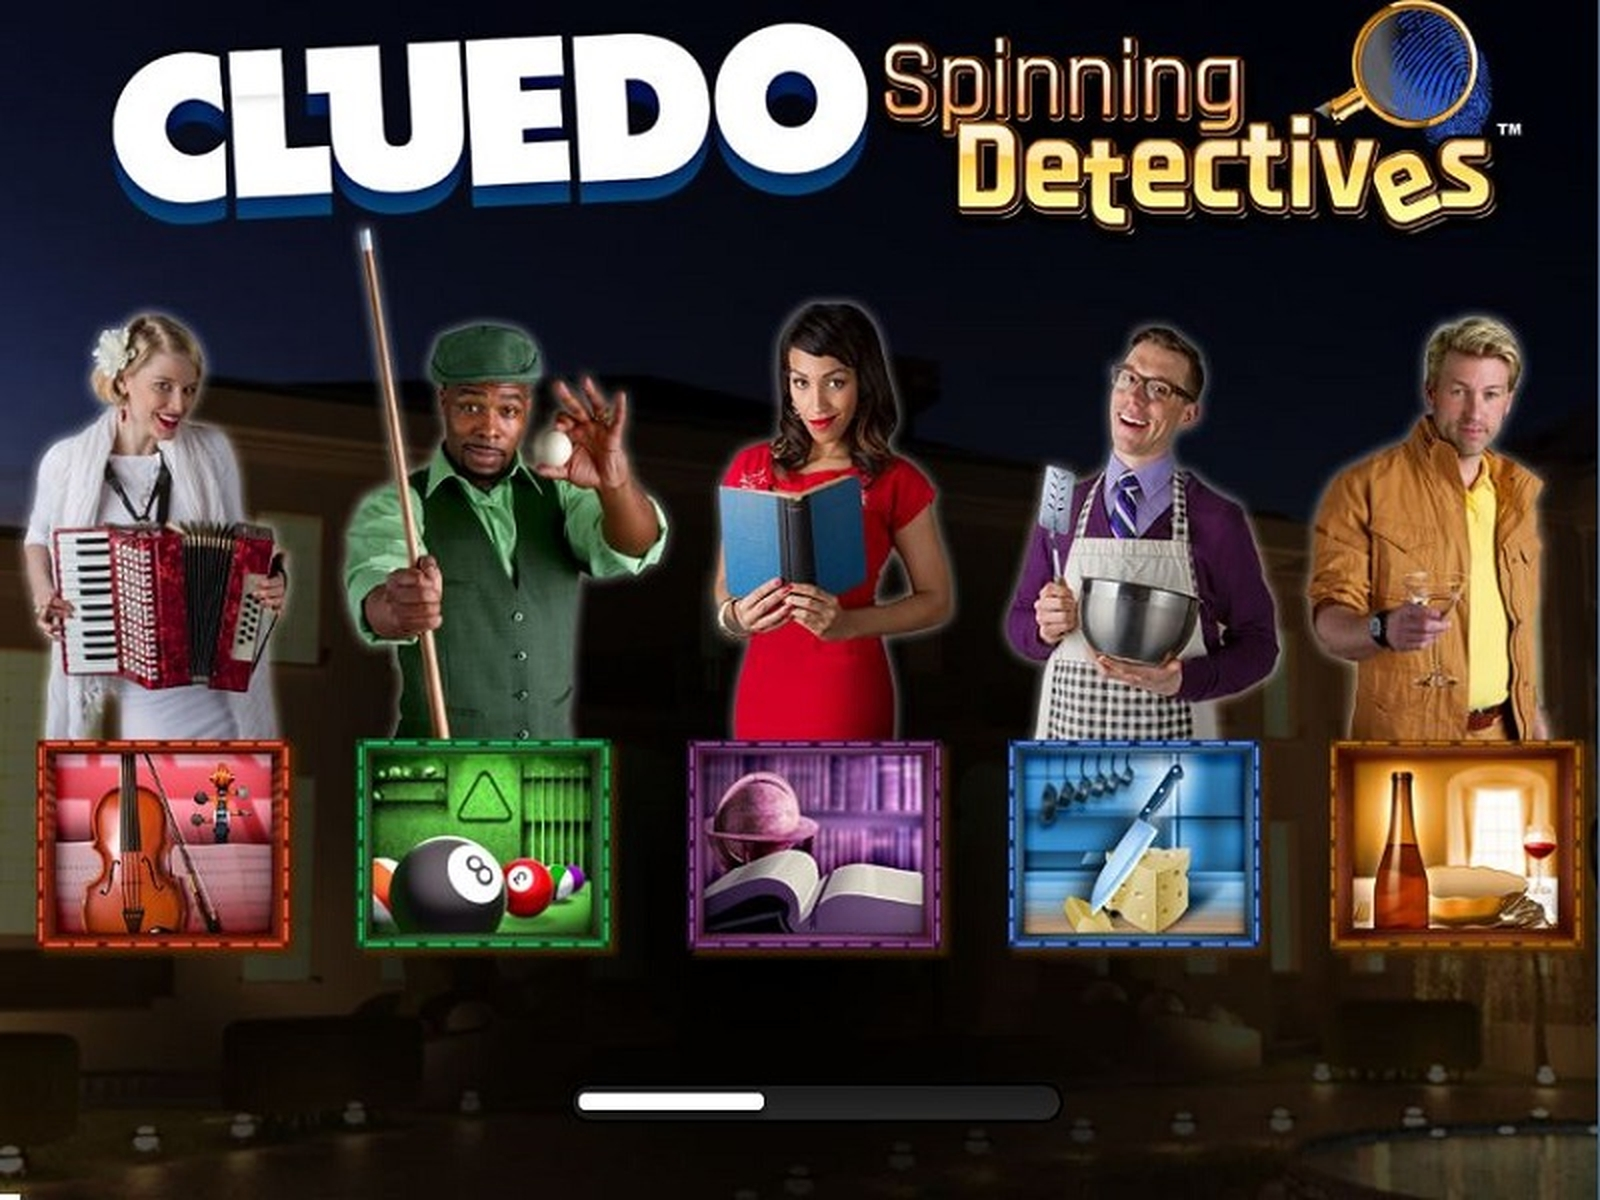 The CLUEDO Spinning Detectives Online Slot Demo Game by WMS